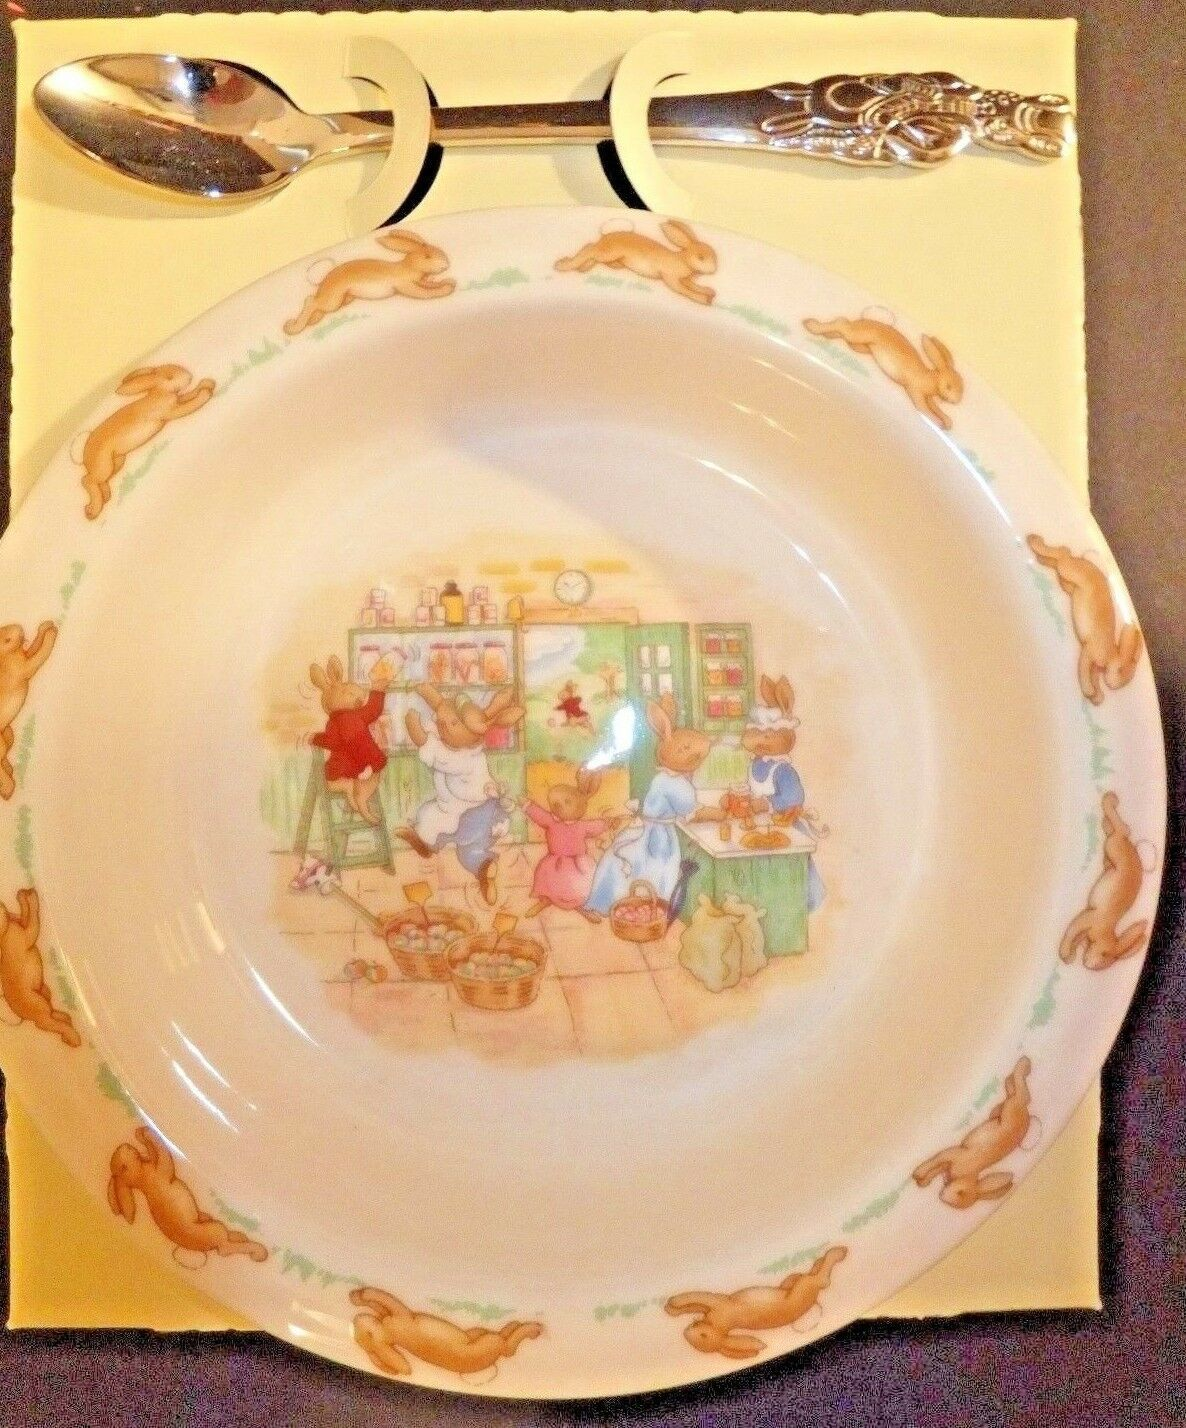 Primary image for Royal Doulton Bunnykins Nursery Set Two Piece Baby Plate and Spoon New